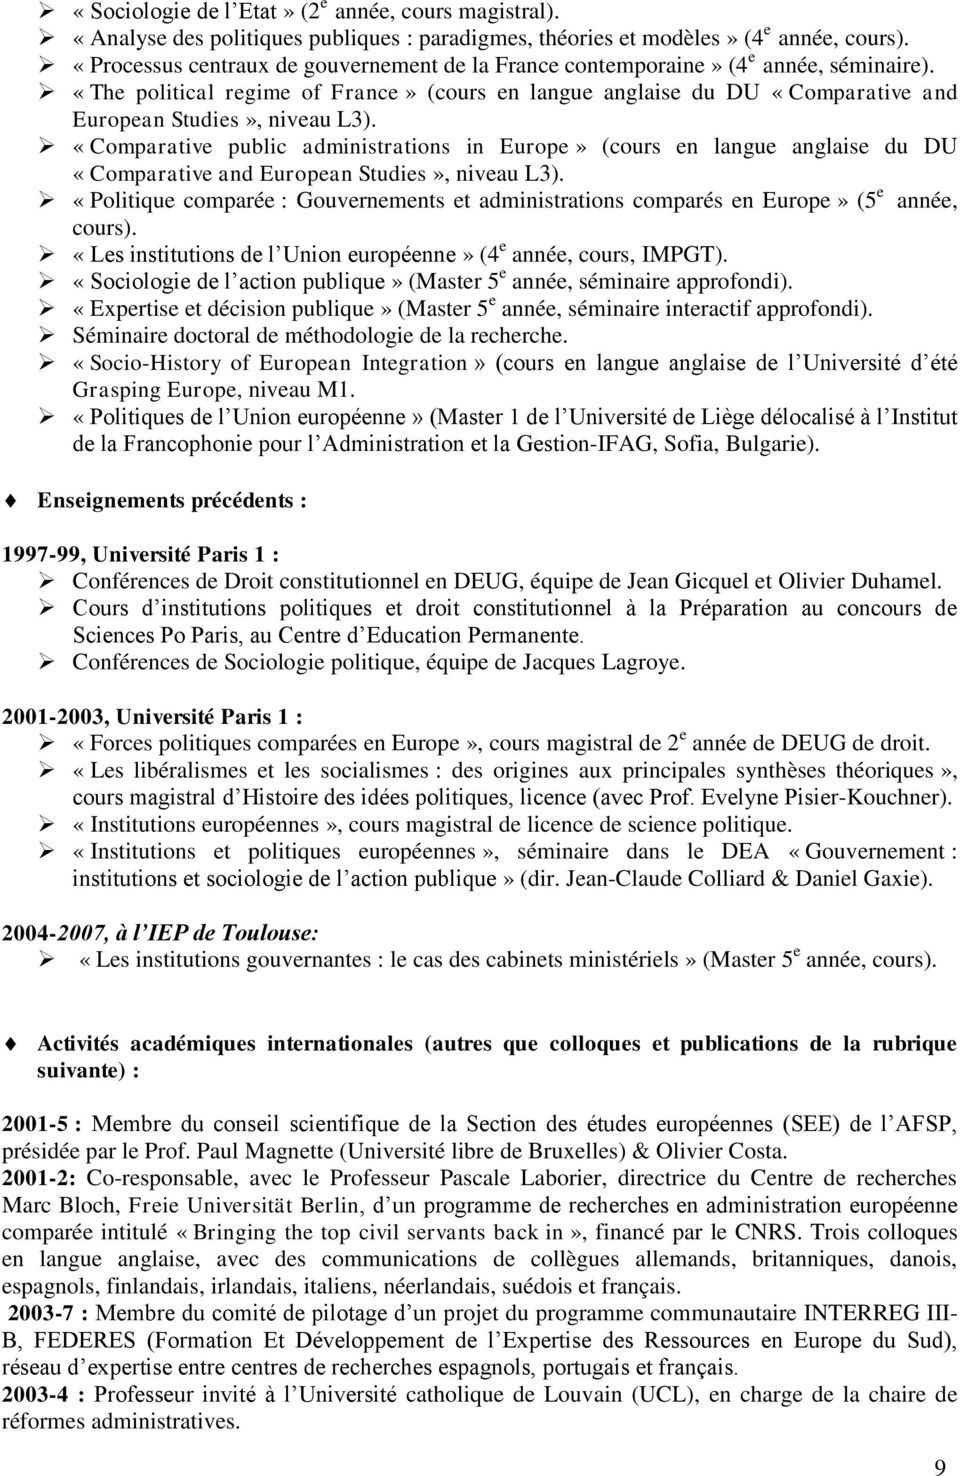 «Comparative public administrations in Europe» (cours en langue anglaise du DU «Comparative and European Studies», niveau L3).